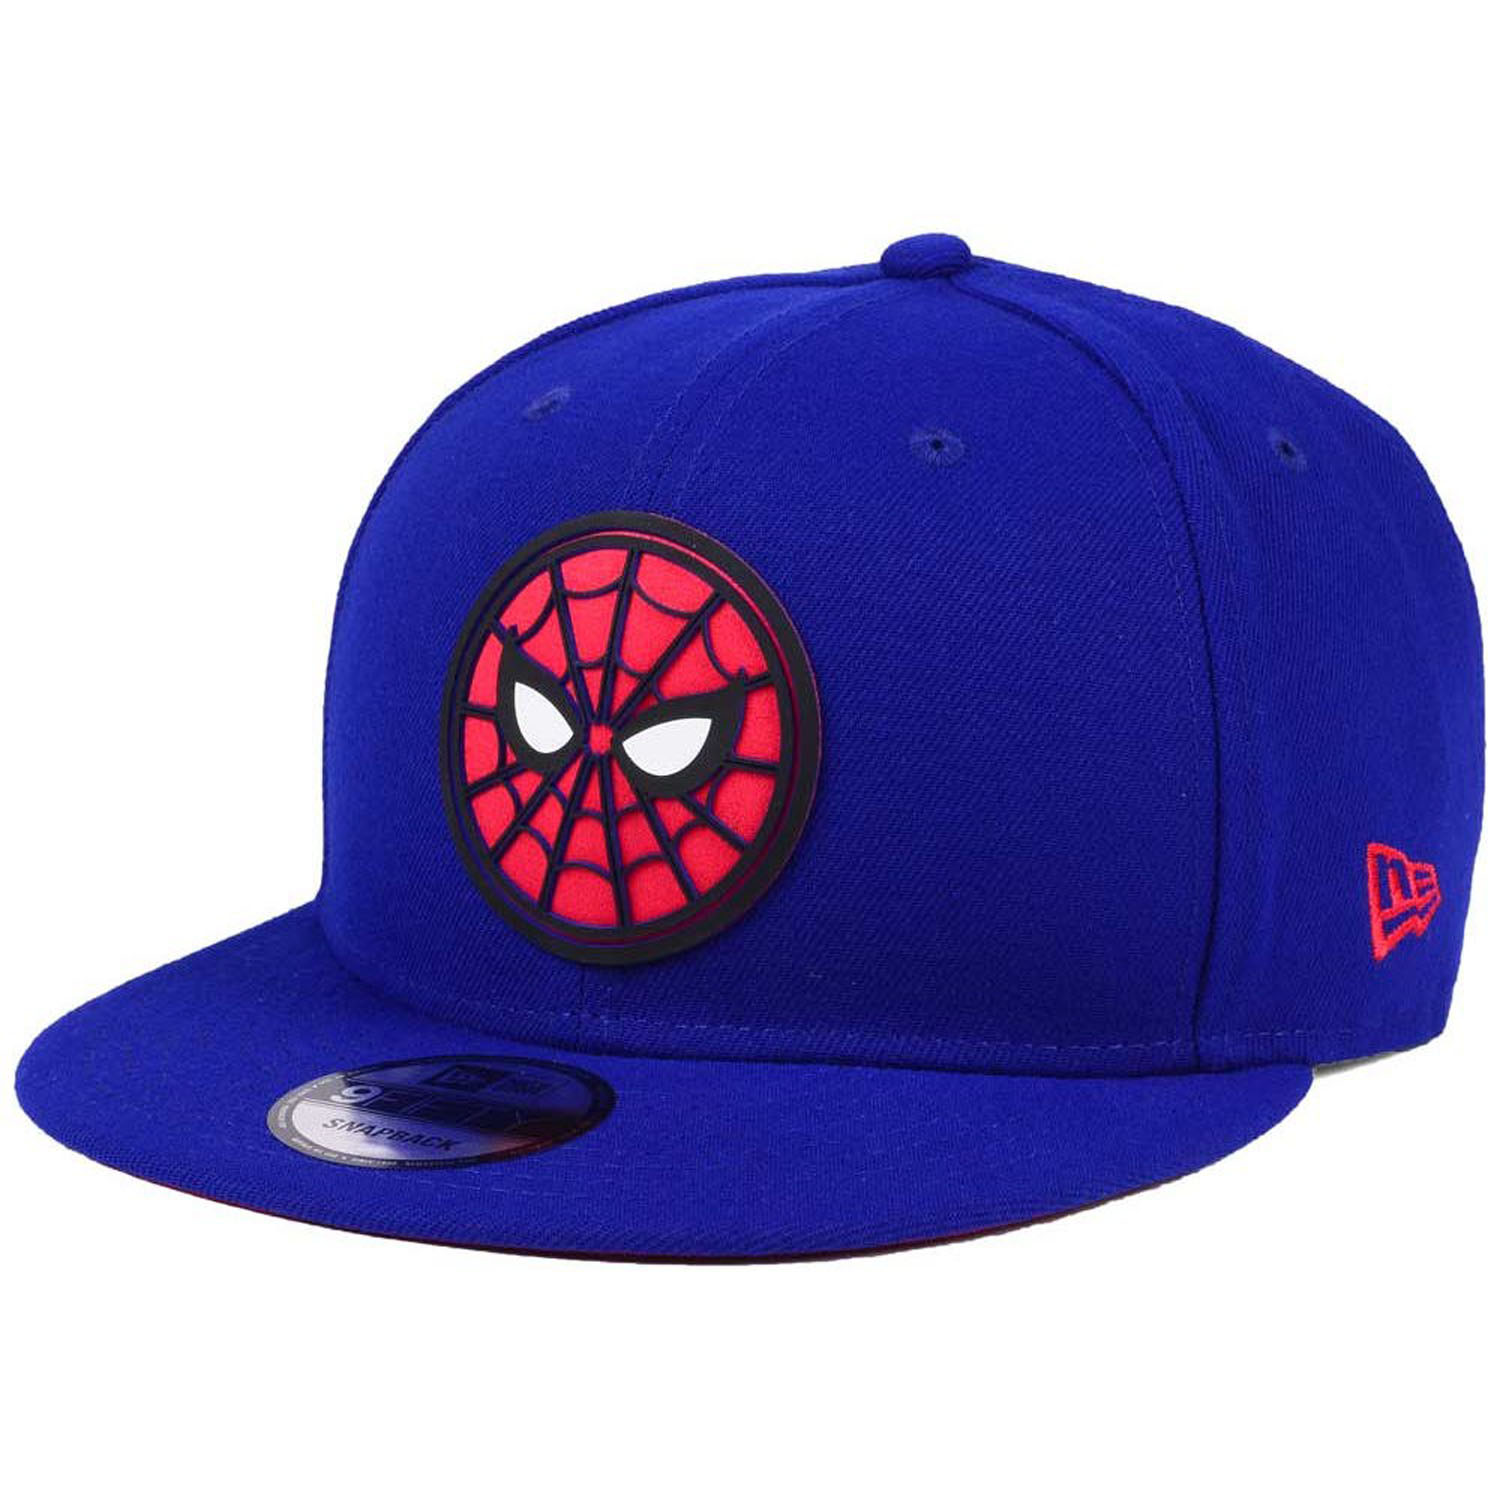 official photos 826cf cbf99 Details about New Era Spider-Man Homecoming Beveled Circle Face Logo 9Fifty  Snapback Cap Hat